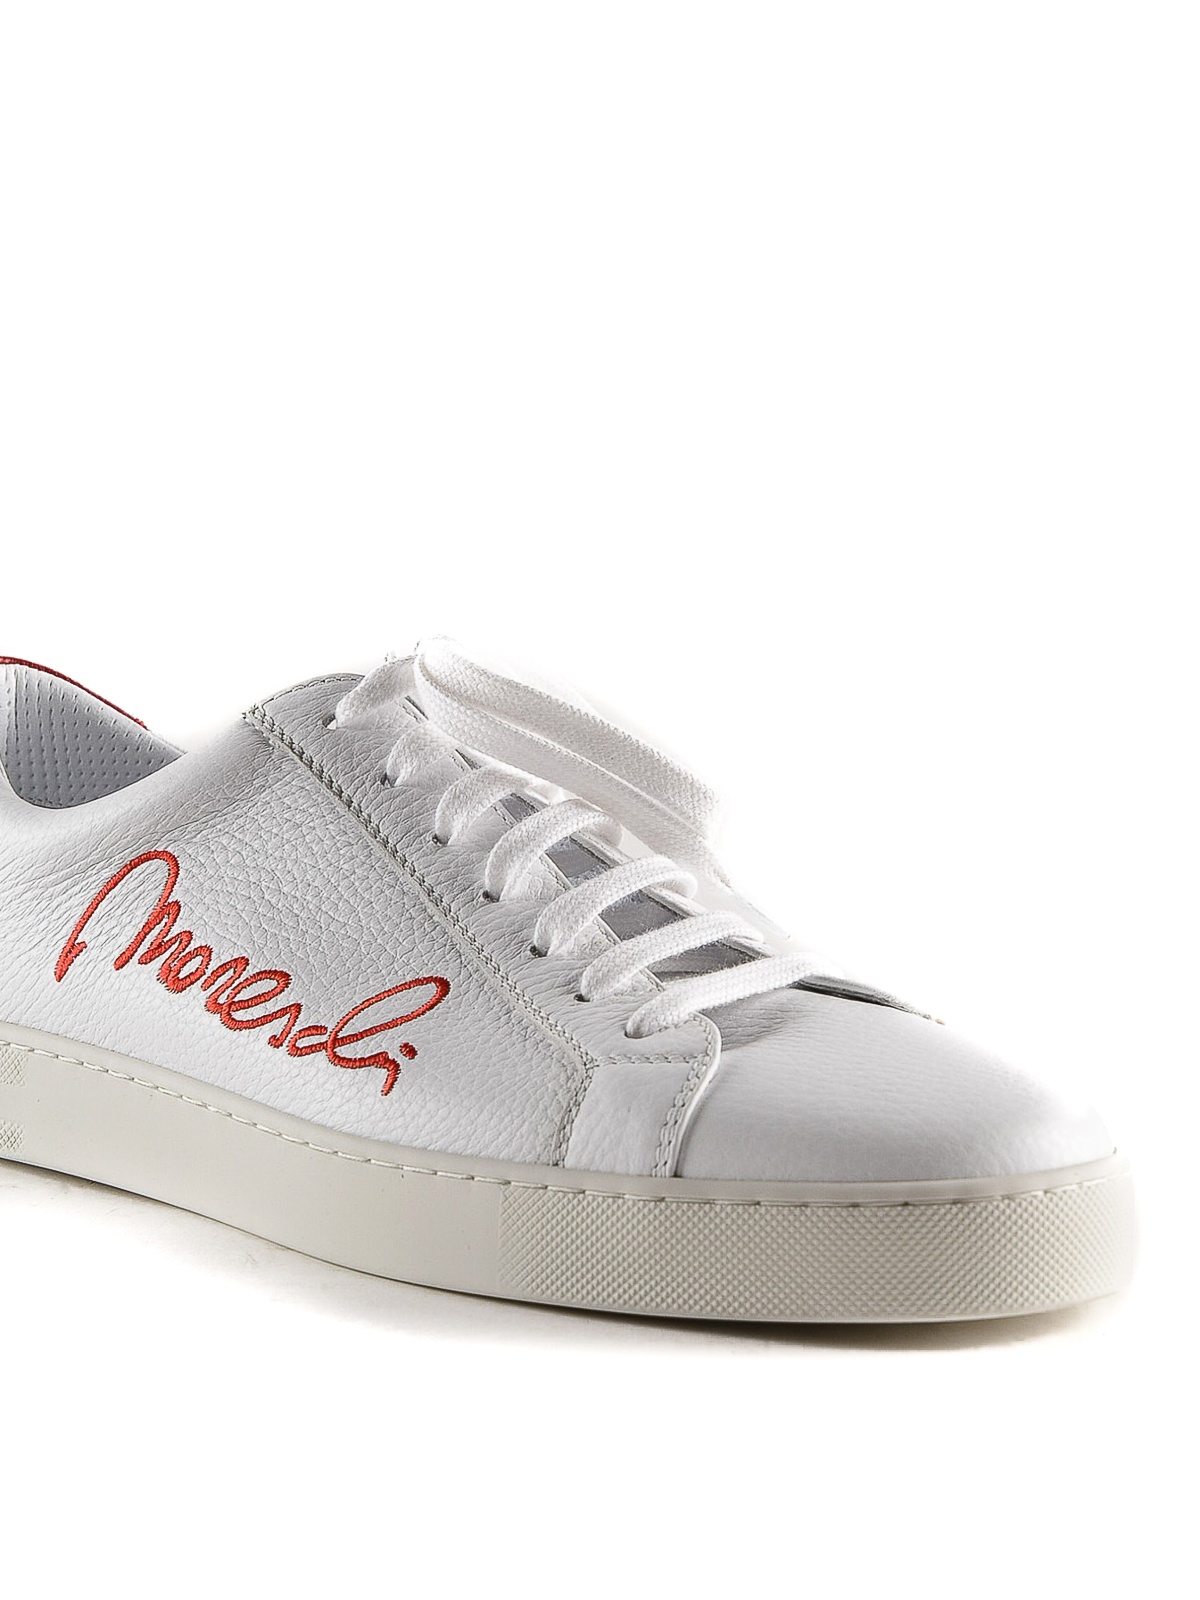 White and red Signature sneakers